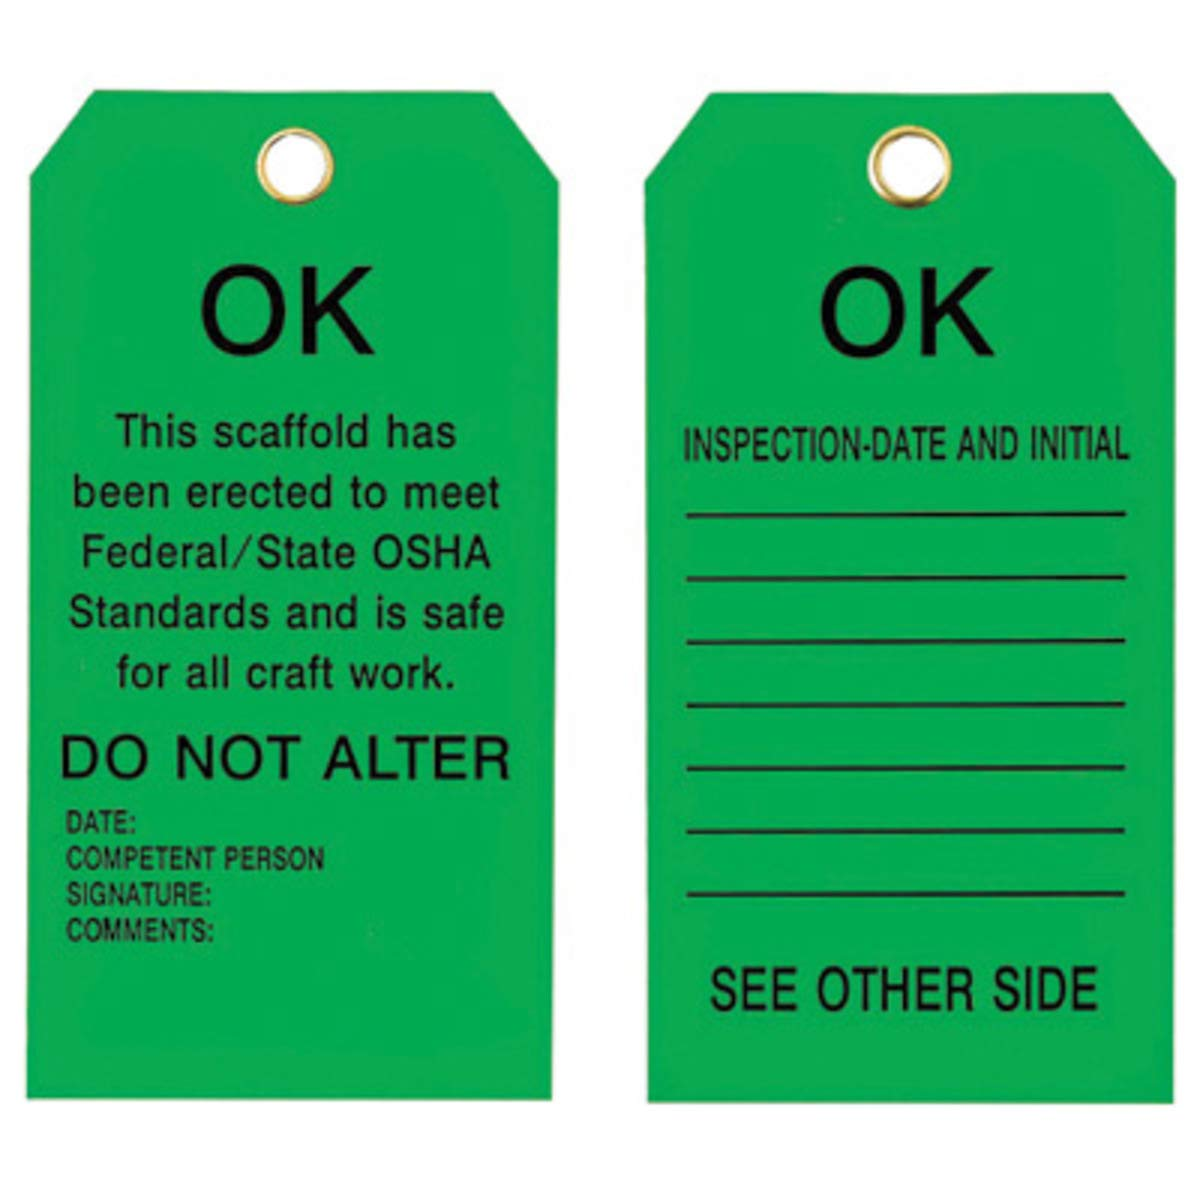 Brady 5 3/4'' X 3'' Black Metal Scaffolding Tag''THIS SCAFFOLD HAS BEEN ERECTED TO MEET FEDERAL/STATE OSHA STANDARDS AND IS SAFE FOR ALL CRAFT WORK. DO NOT ALTER DATE by Brady USA